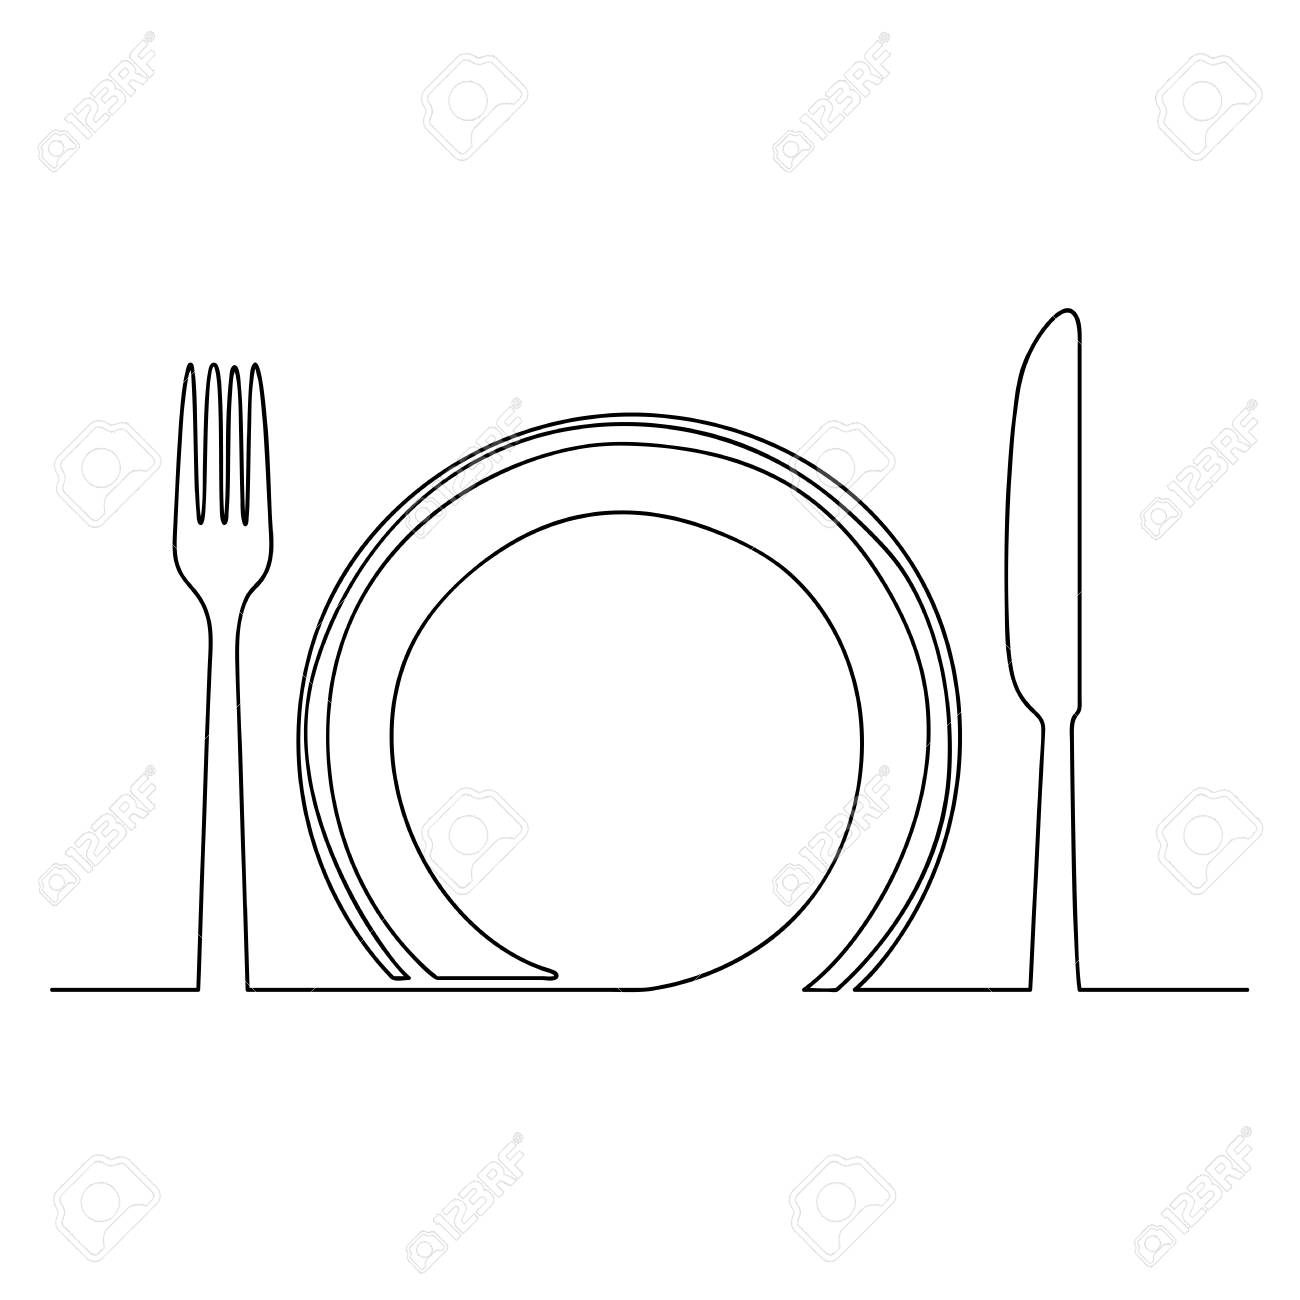 Empty Plate Fork And Knife One Line Drawing Isolated On White